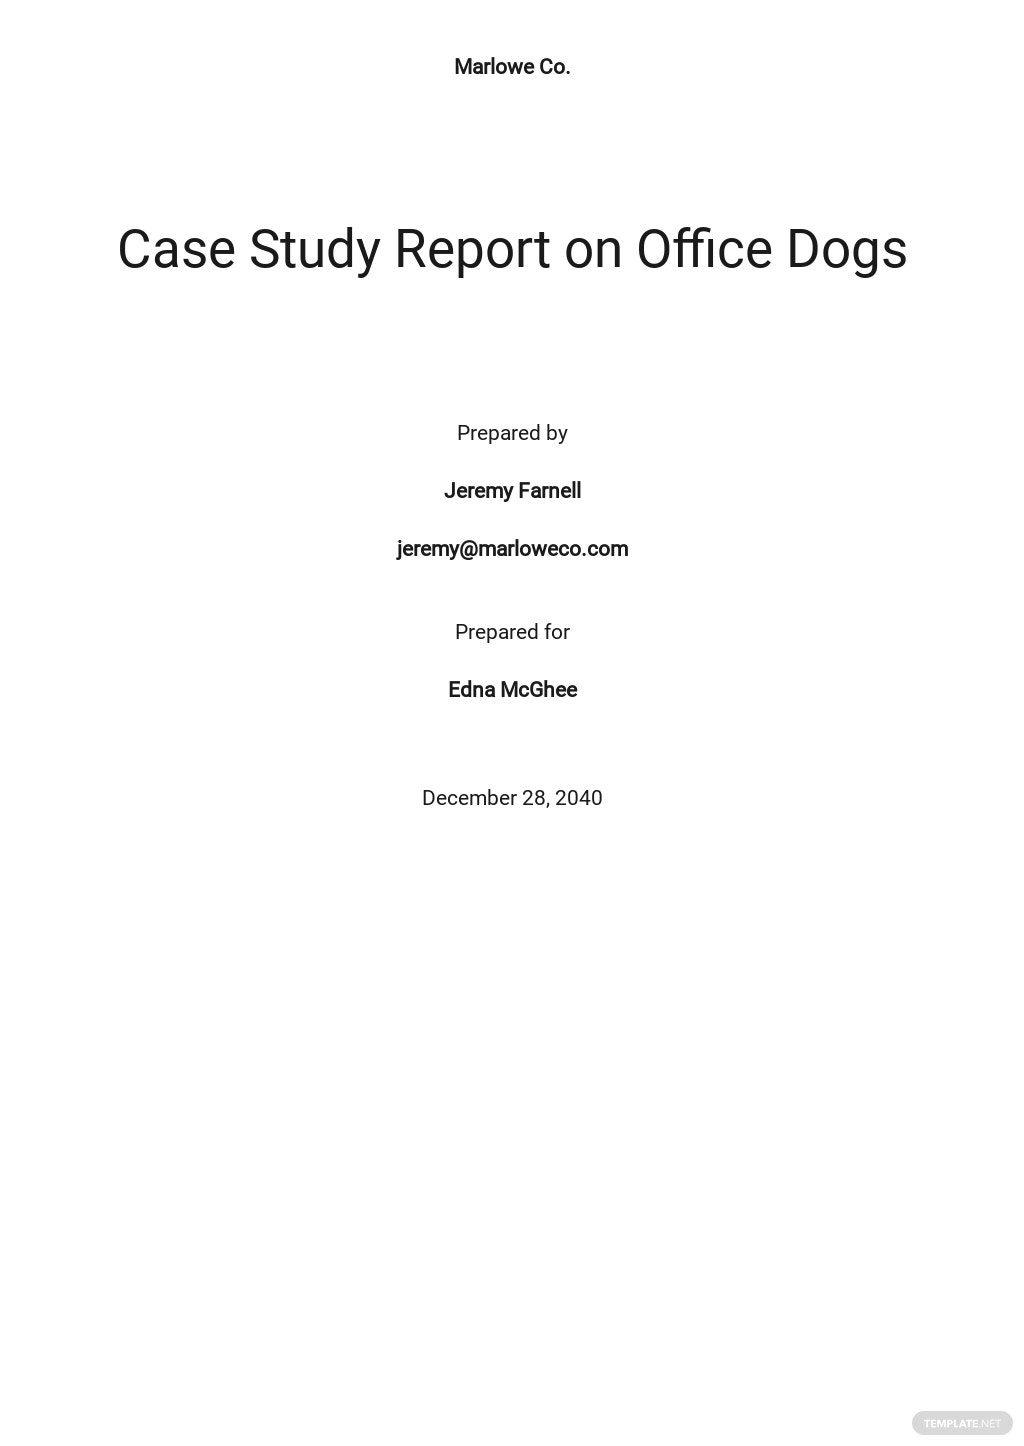 Case Study Report Template.jpe